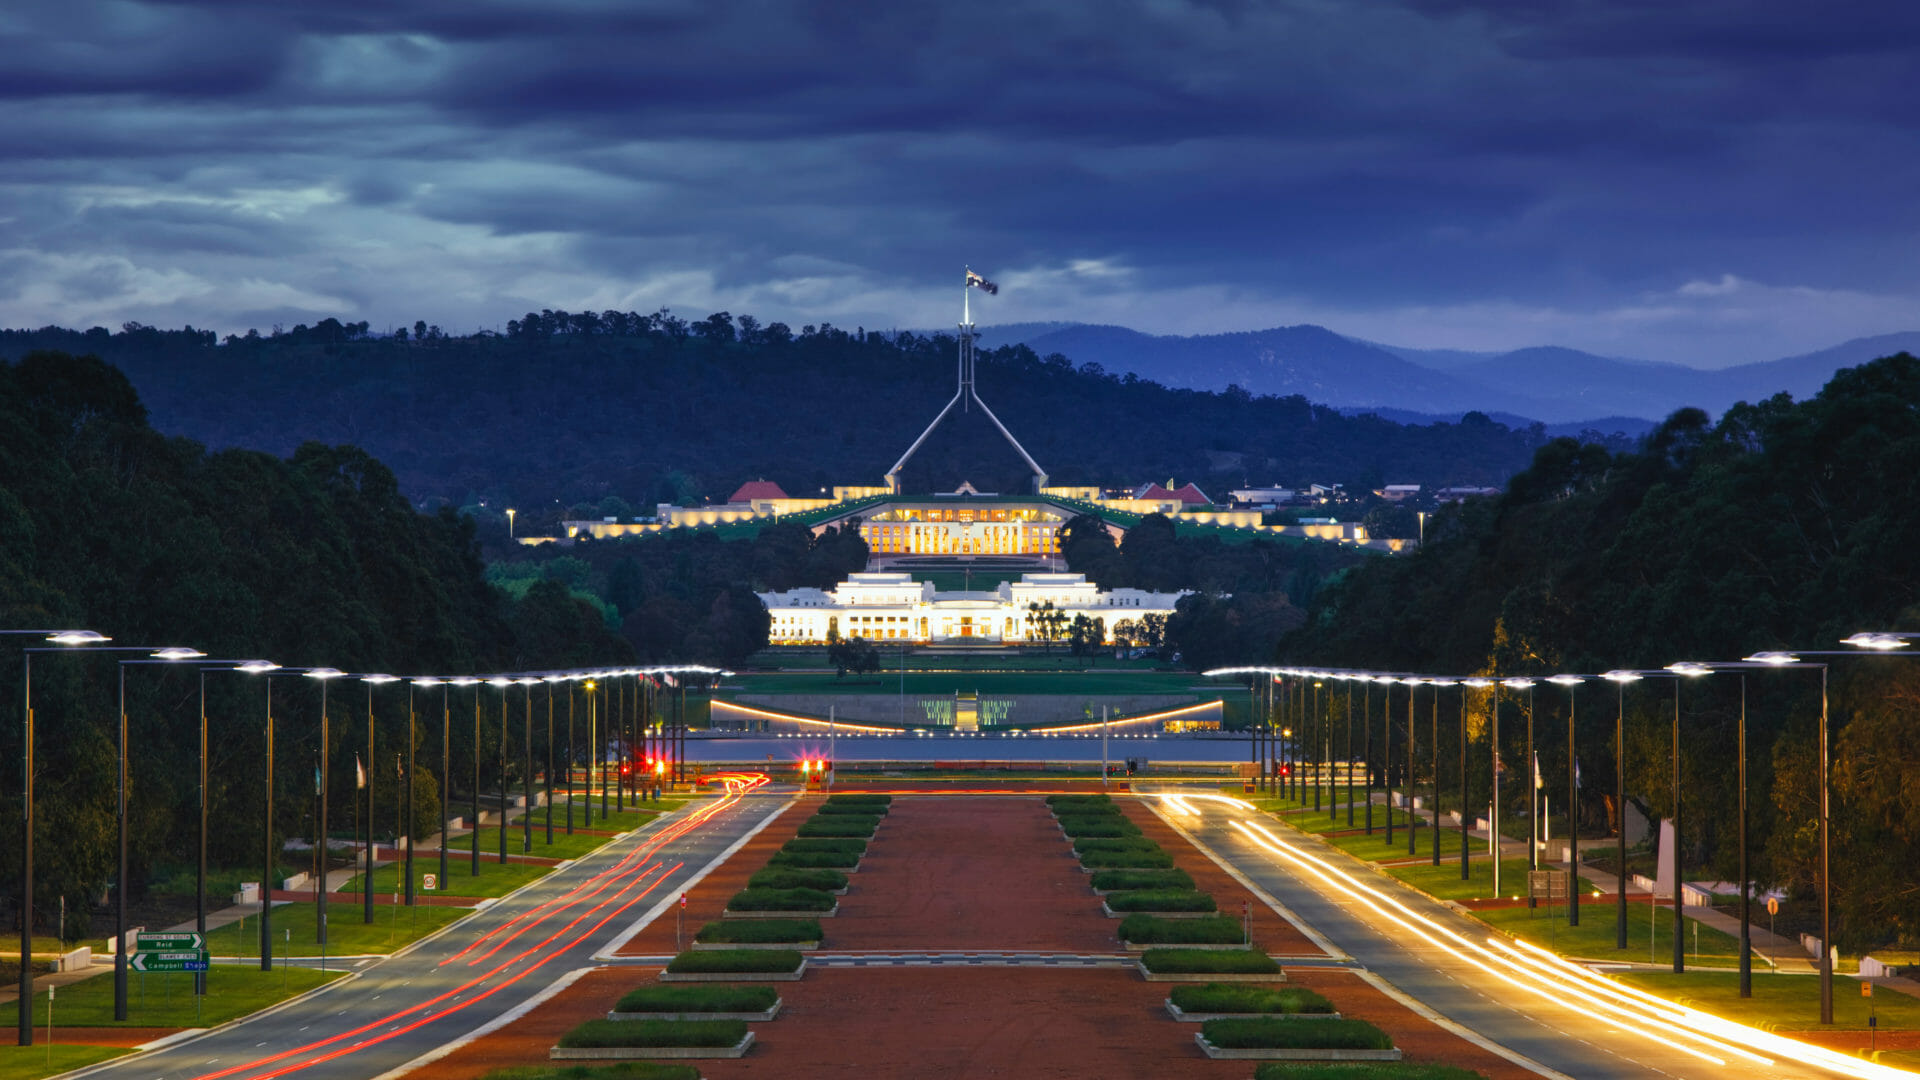 Federation mall at night time, with Parliament House in Canberra at the end